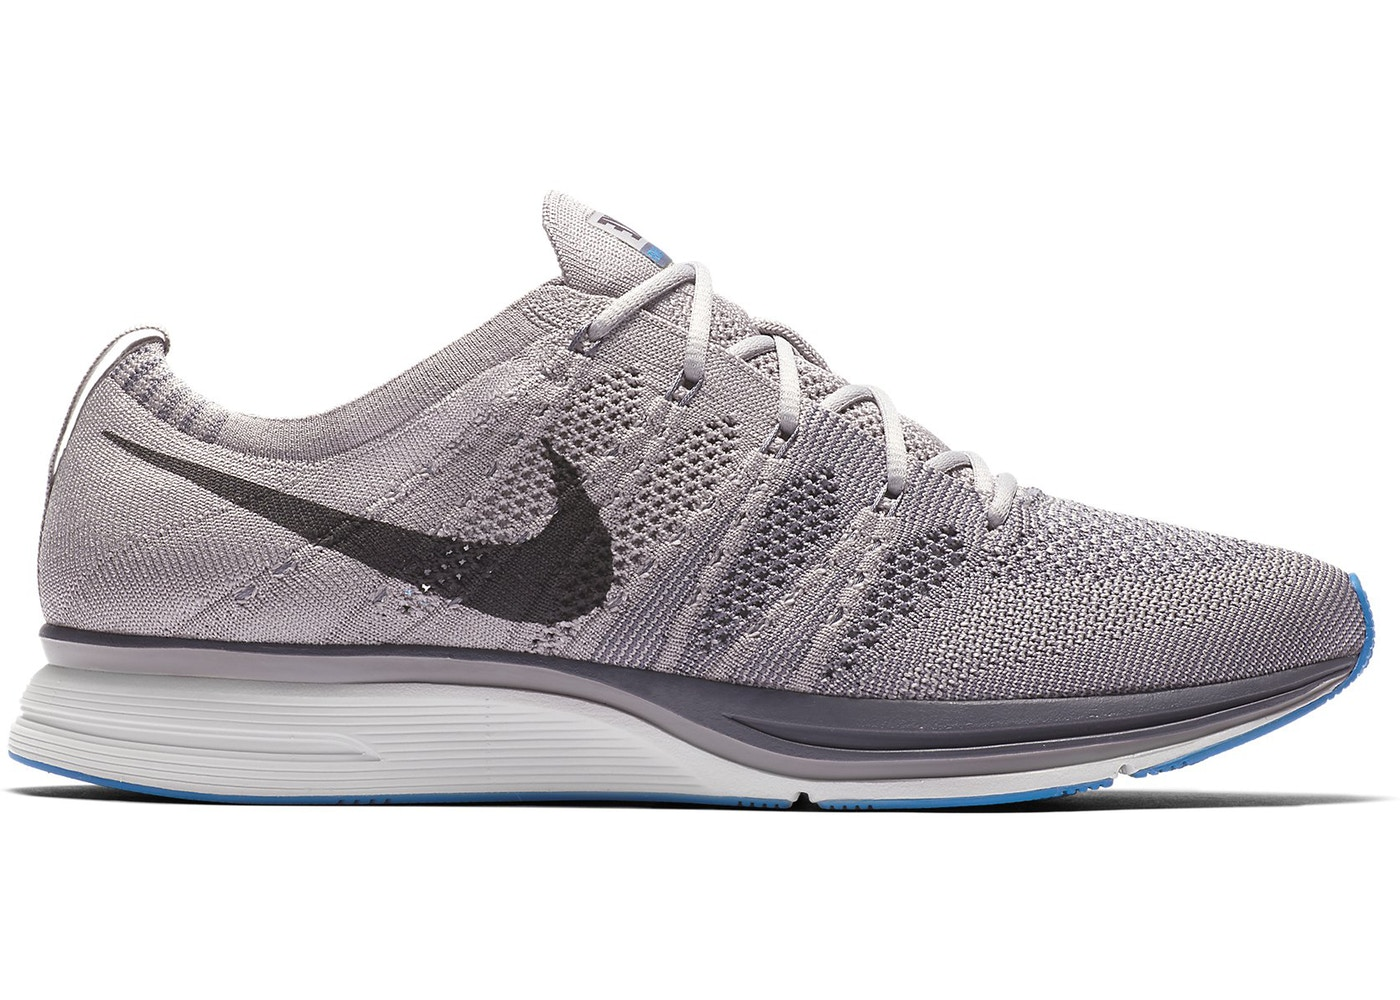 official photos 19137 d621b Flyknit Trainer Atmosphere Grey - AH8396-006